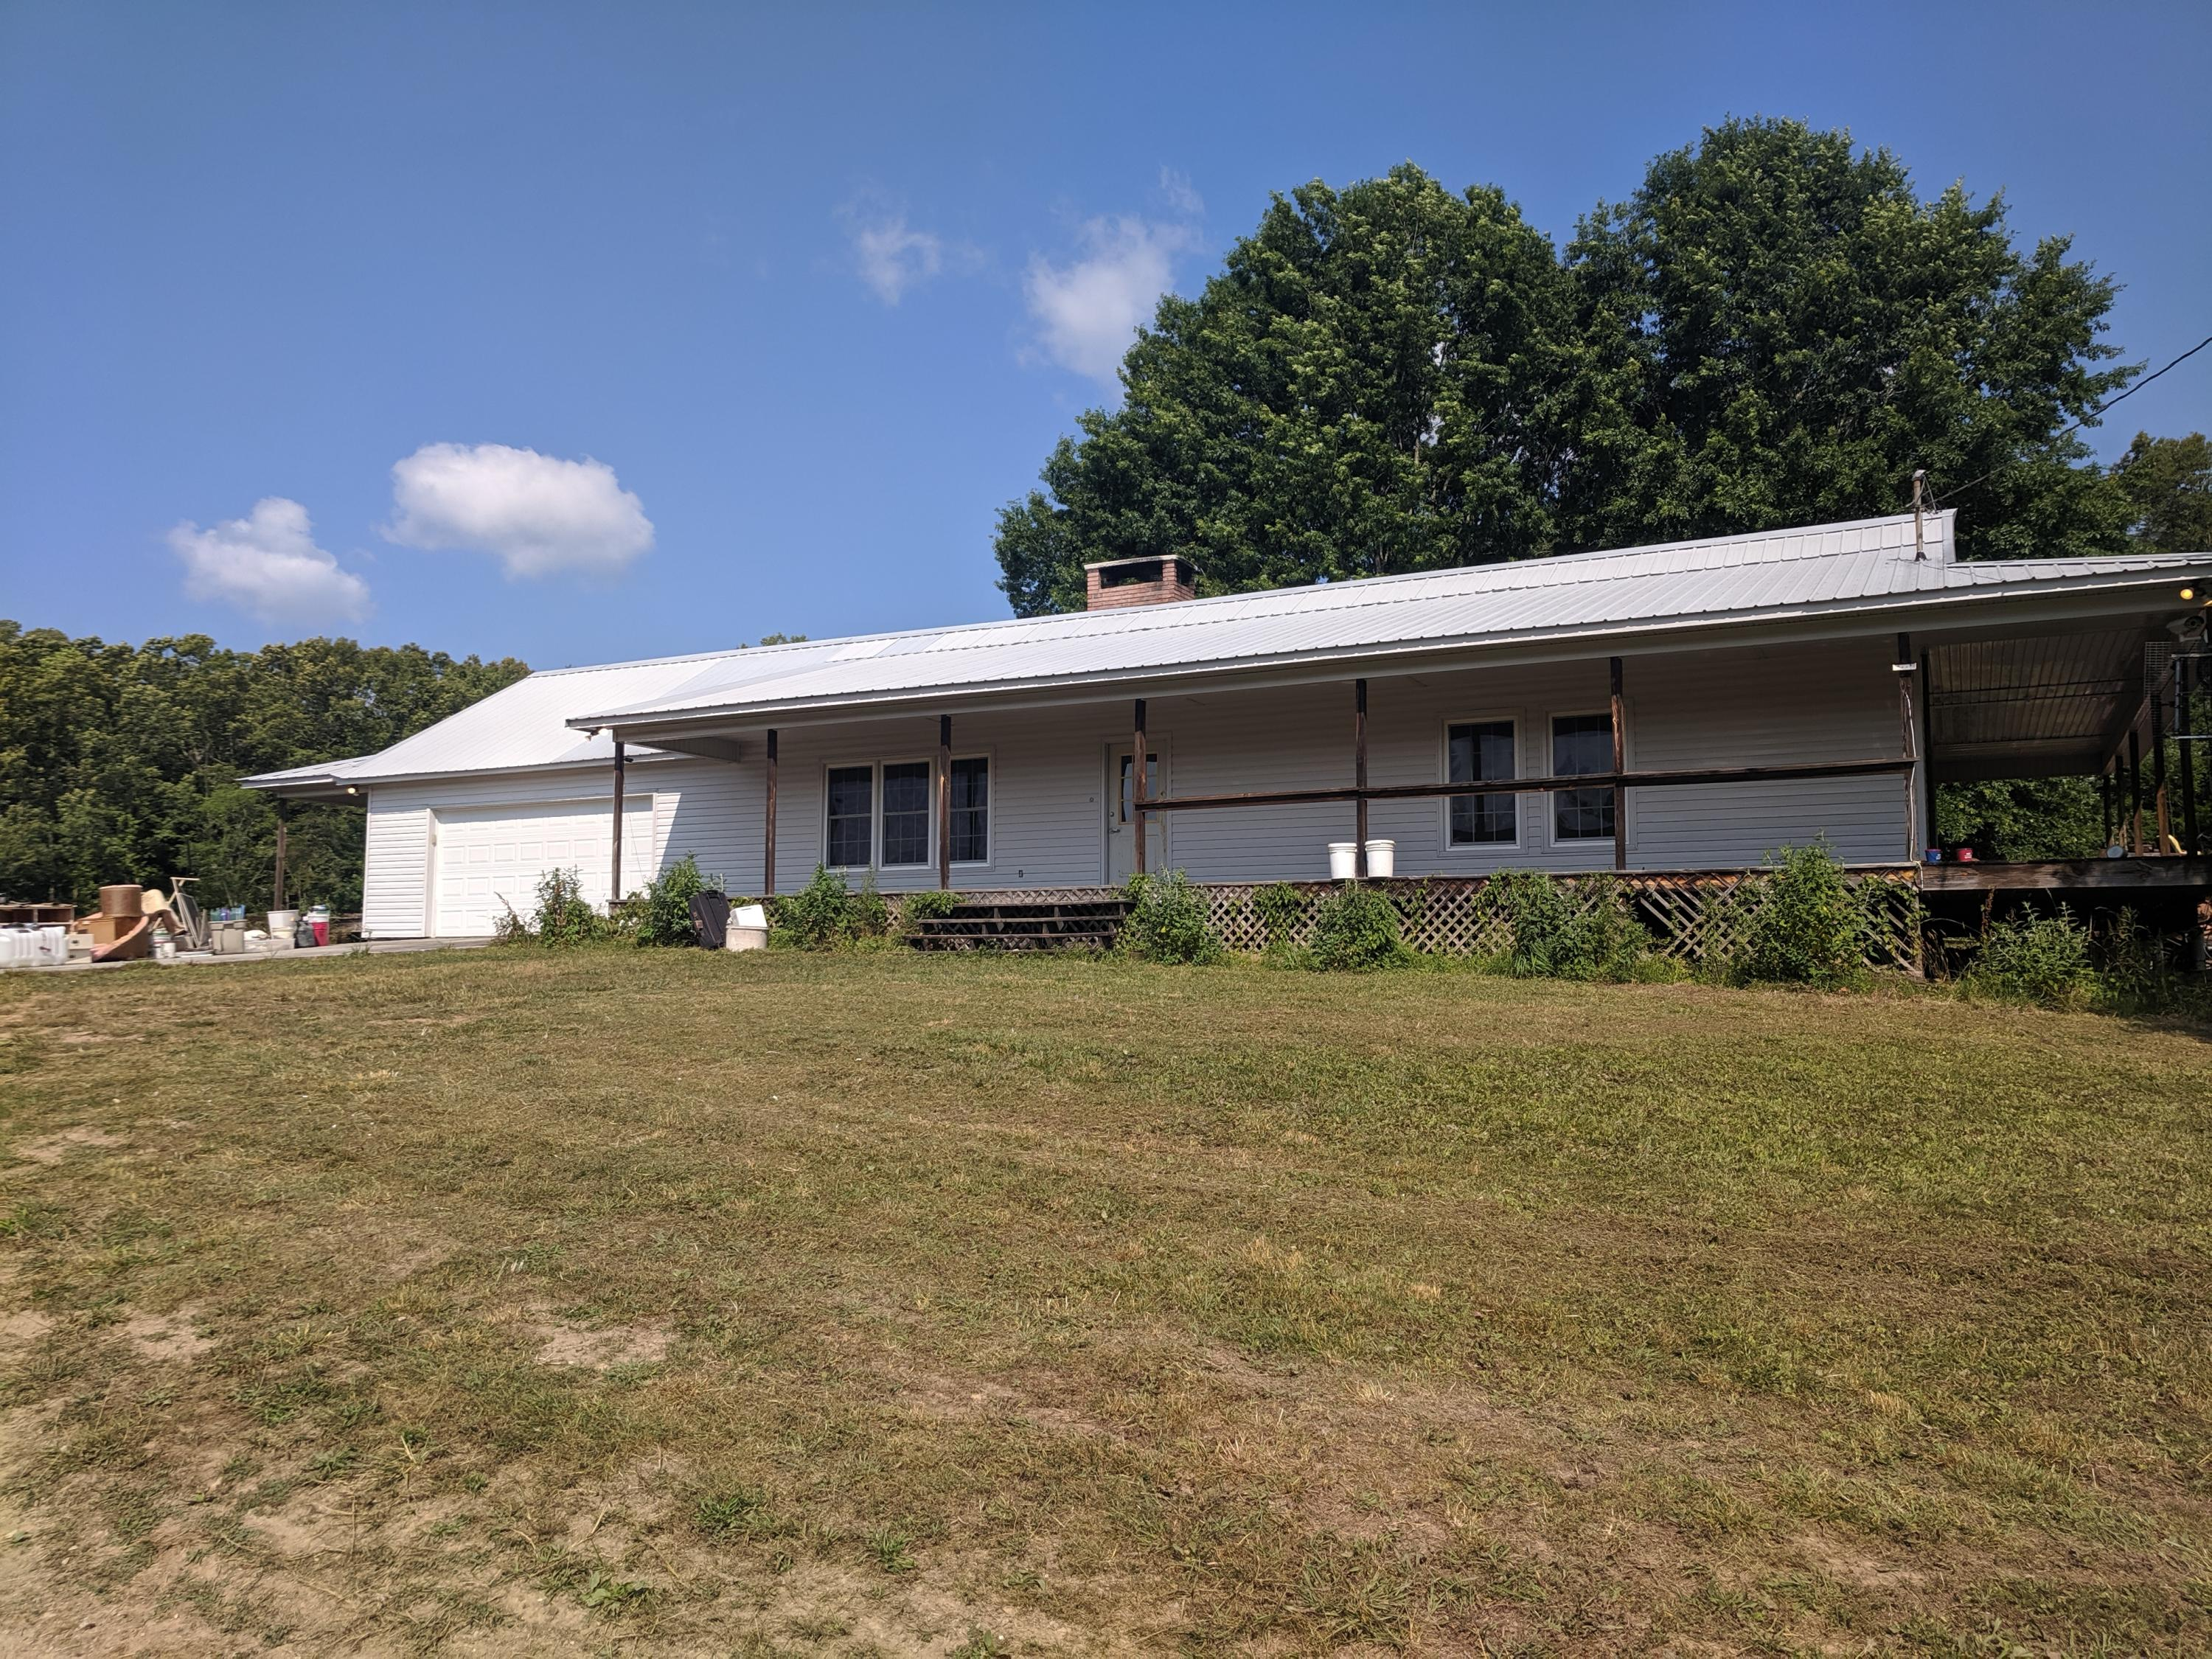 20190826132506860928000000-o Clinton anderson county homes for sale